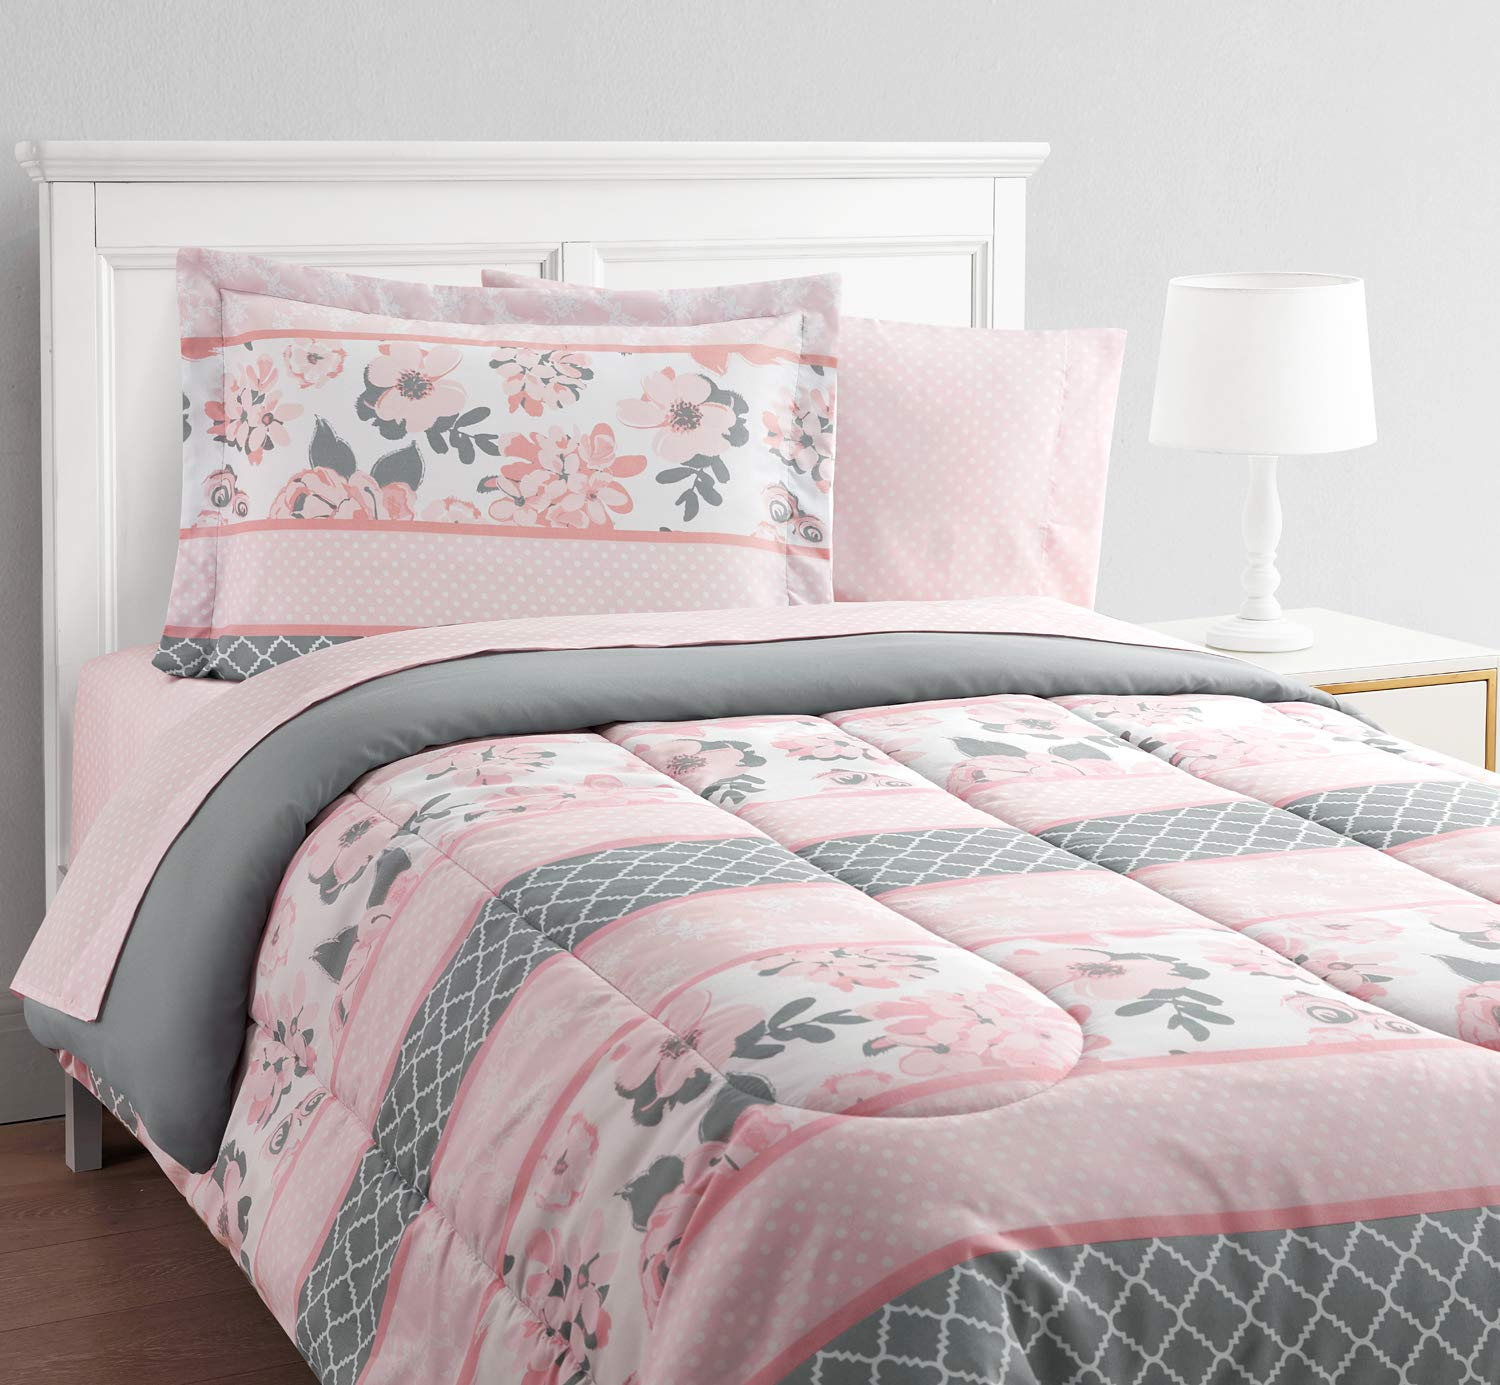 Alexa and Bella Carley 11-Piece Bed in a Bag With Extra Sheet Set Featuring a Stripe Pattern, and Brushed Fabric For Added Softness, Pink, Full